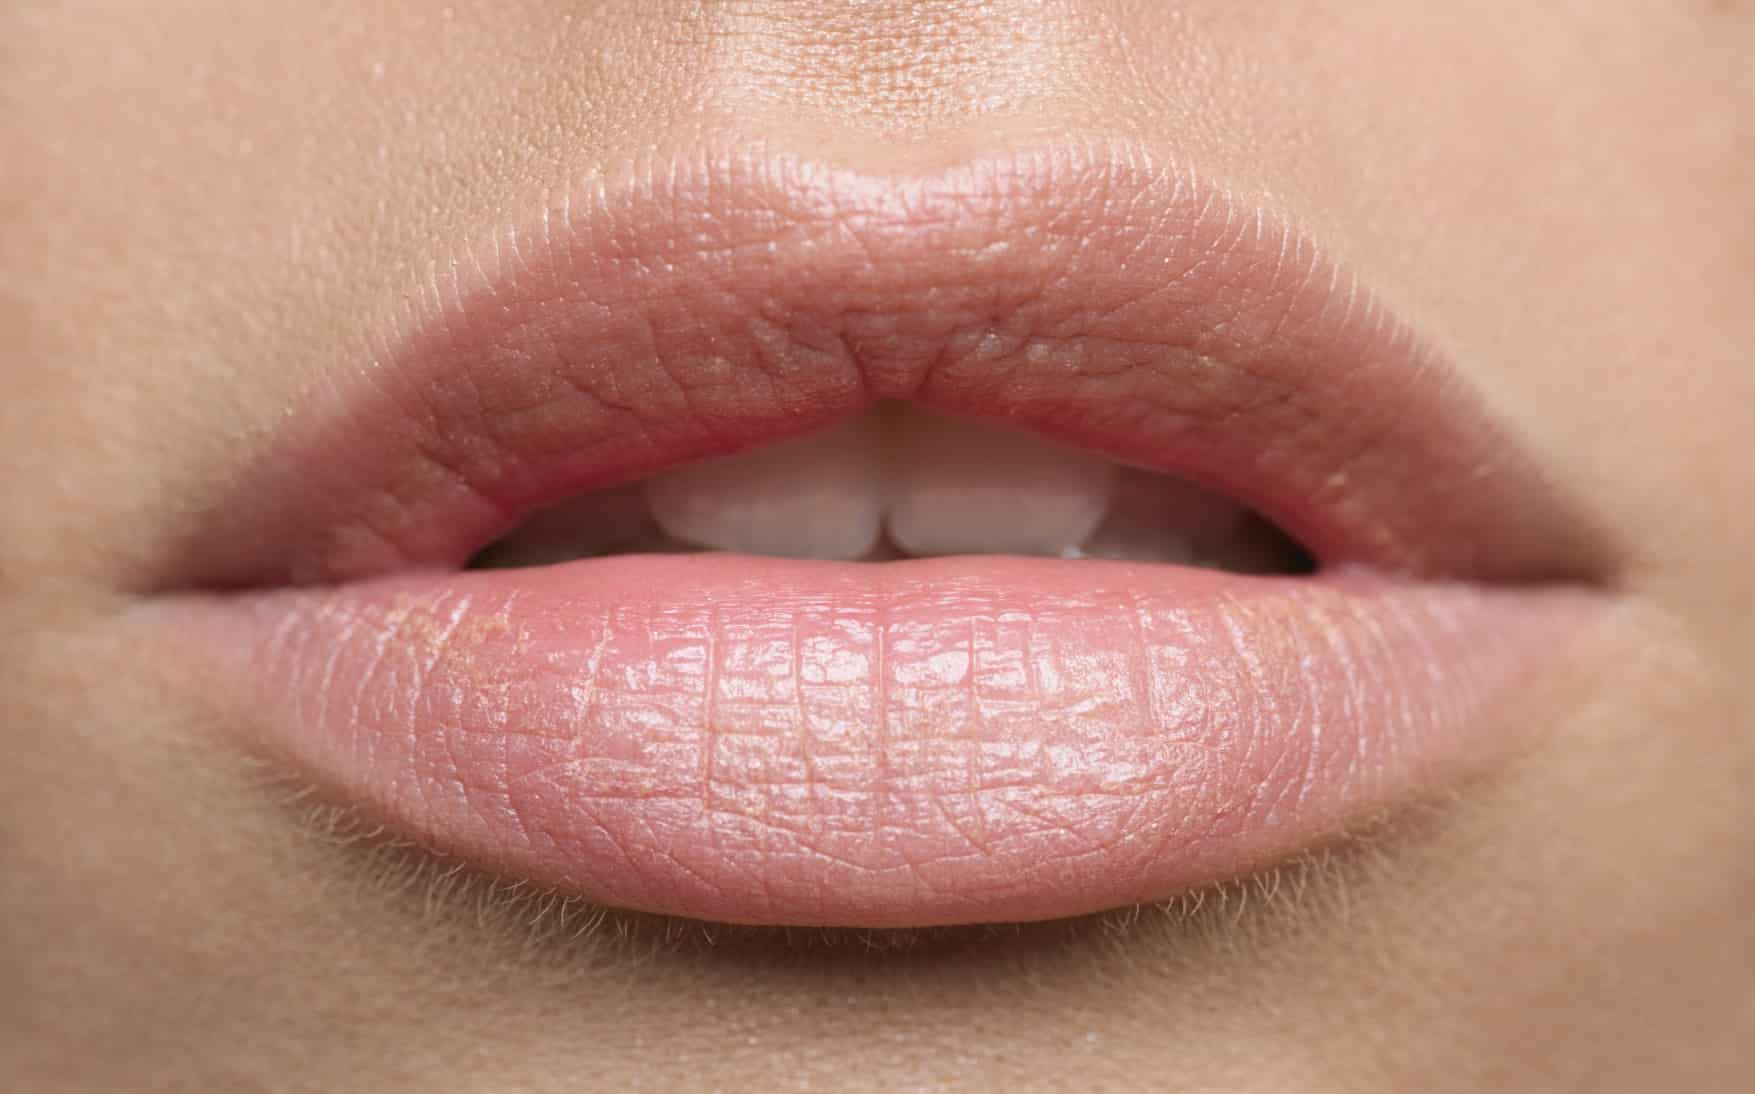 skin cancer on lips pictures #10